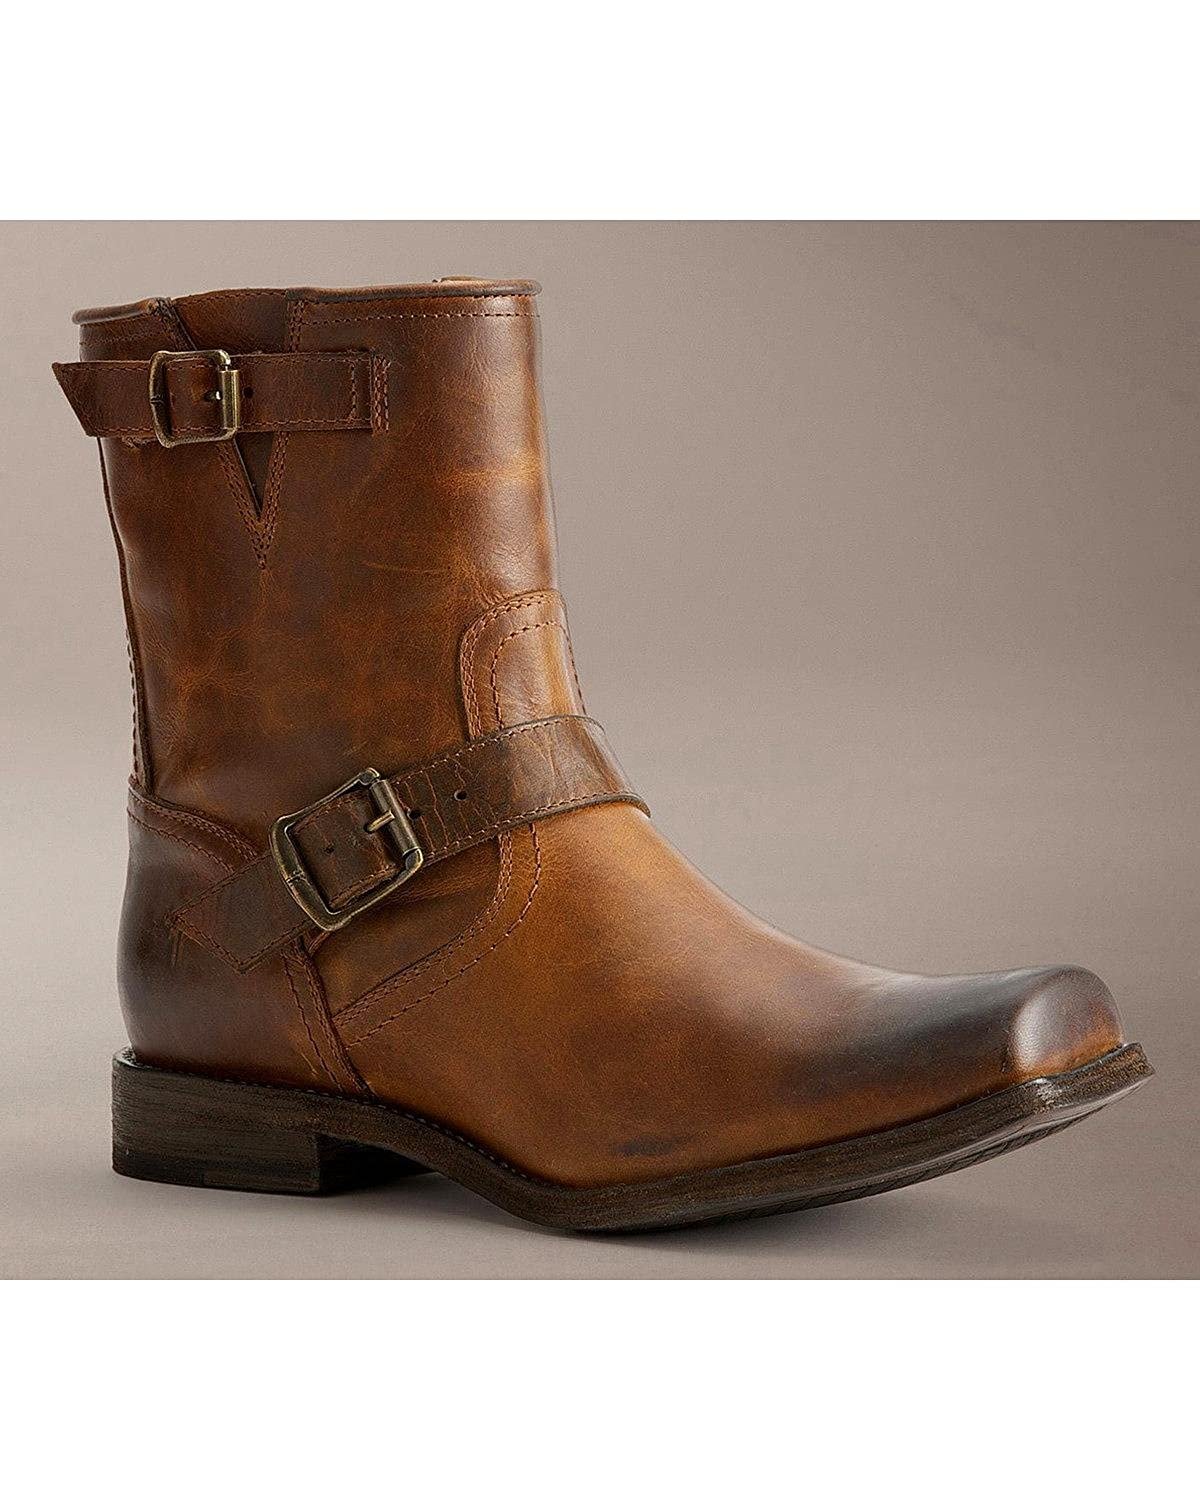 FRYE Men's Smith Engineer Boot